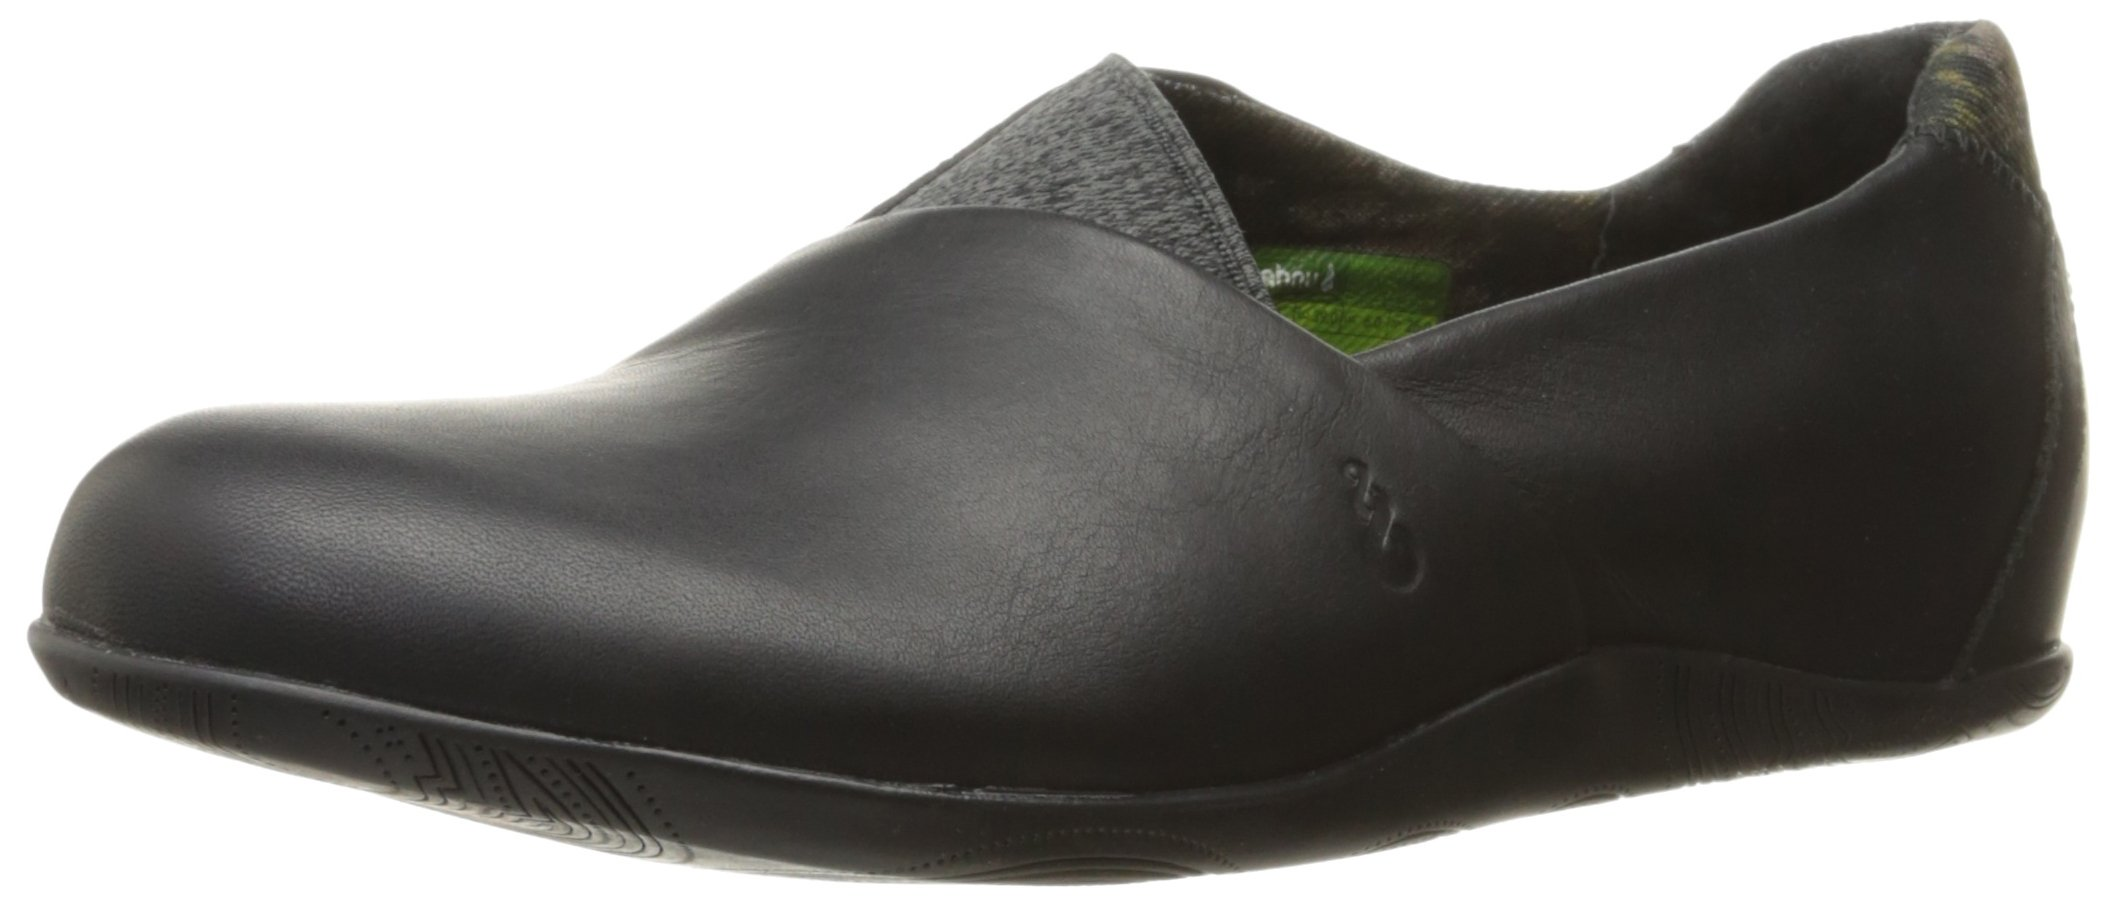 Ahnu Women's Tola Slip-On Casual Shoe, Black, 7.5 M US